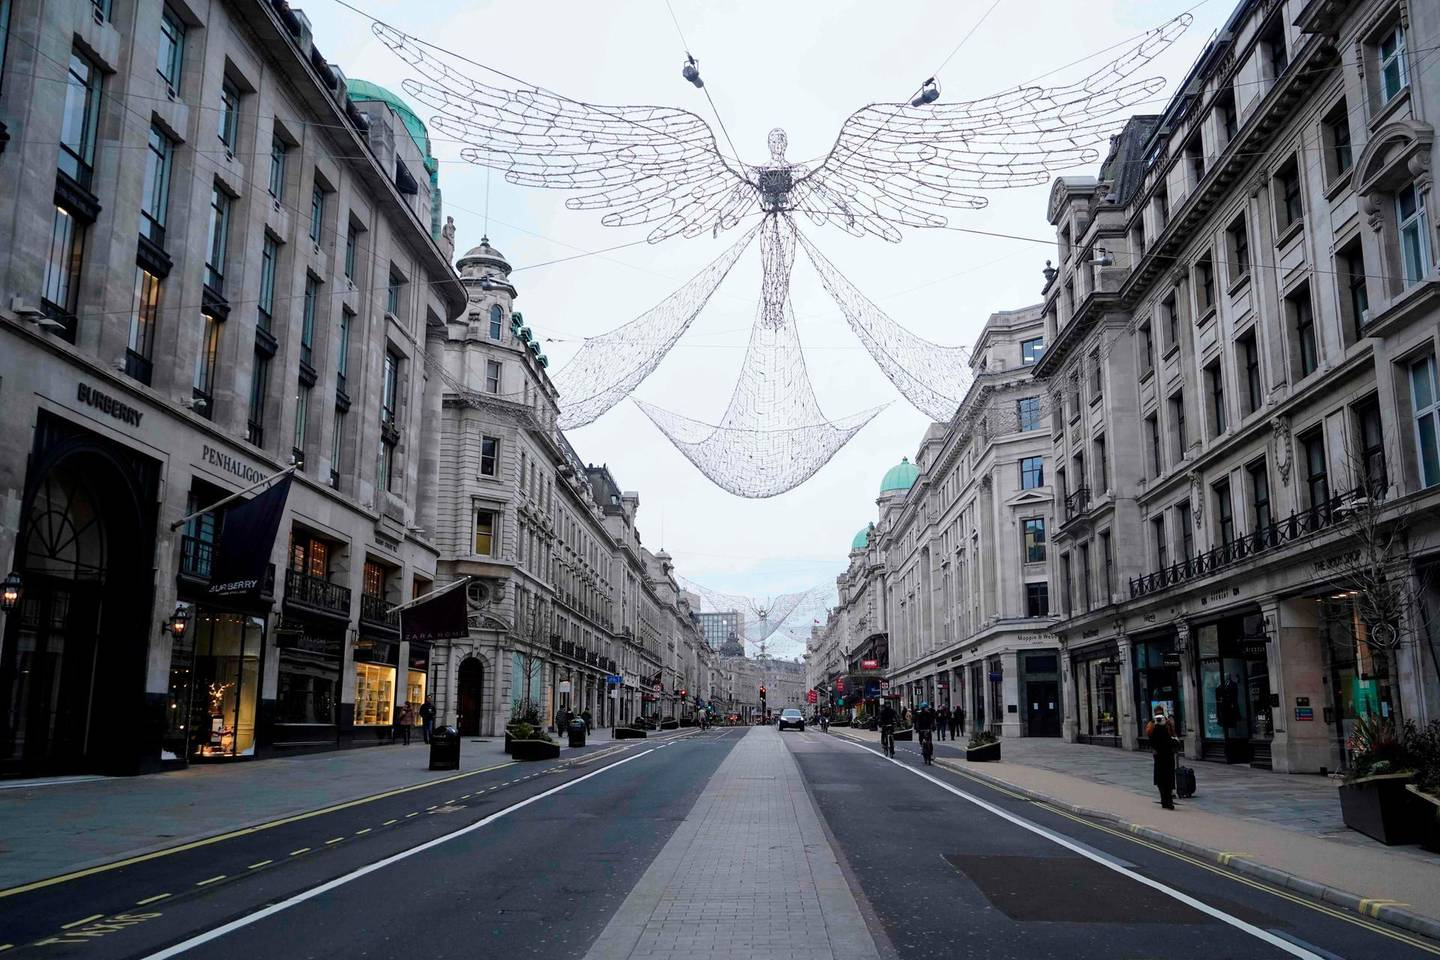 A near-deserted Regent Street is pictured in London on Boxing Day, December 26, 2020, as Londoners continue to live under Tier 4 lockdown restrictions. Fears over new strains and surging coronavirus infections in general across Europe have severely dampened the mood over the holiday season. / AFP / Niklas HALLE'N